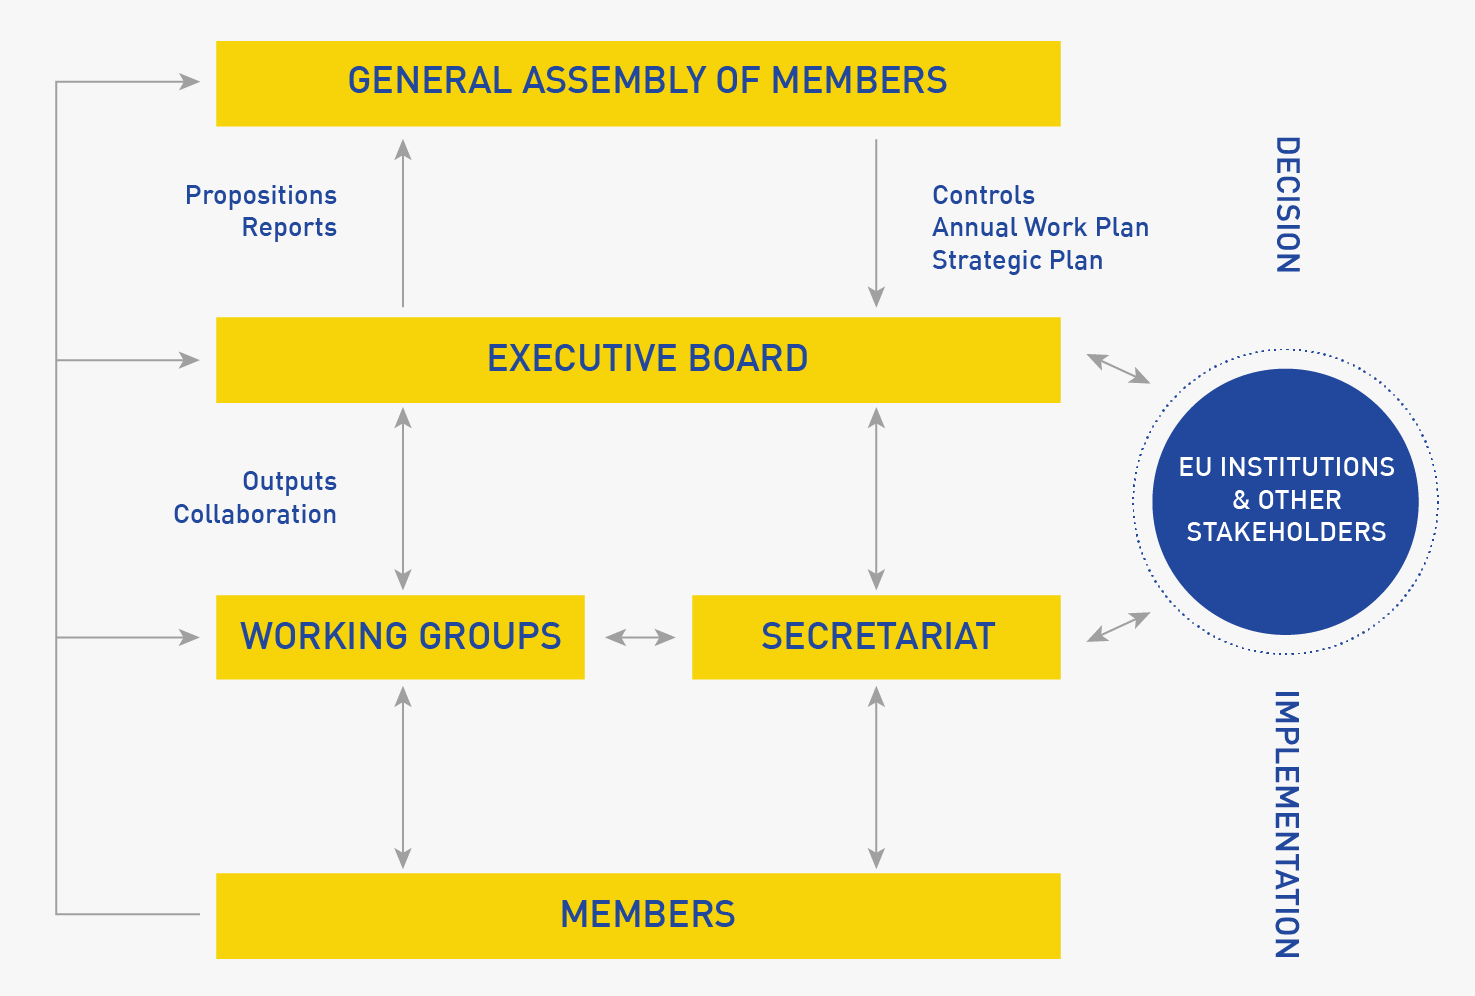 General Assembly of Members - Executive Board - Working Groups - Secretariat - Members